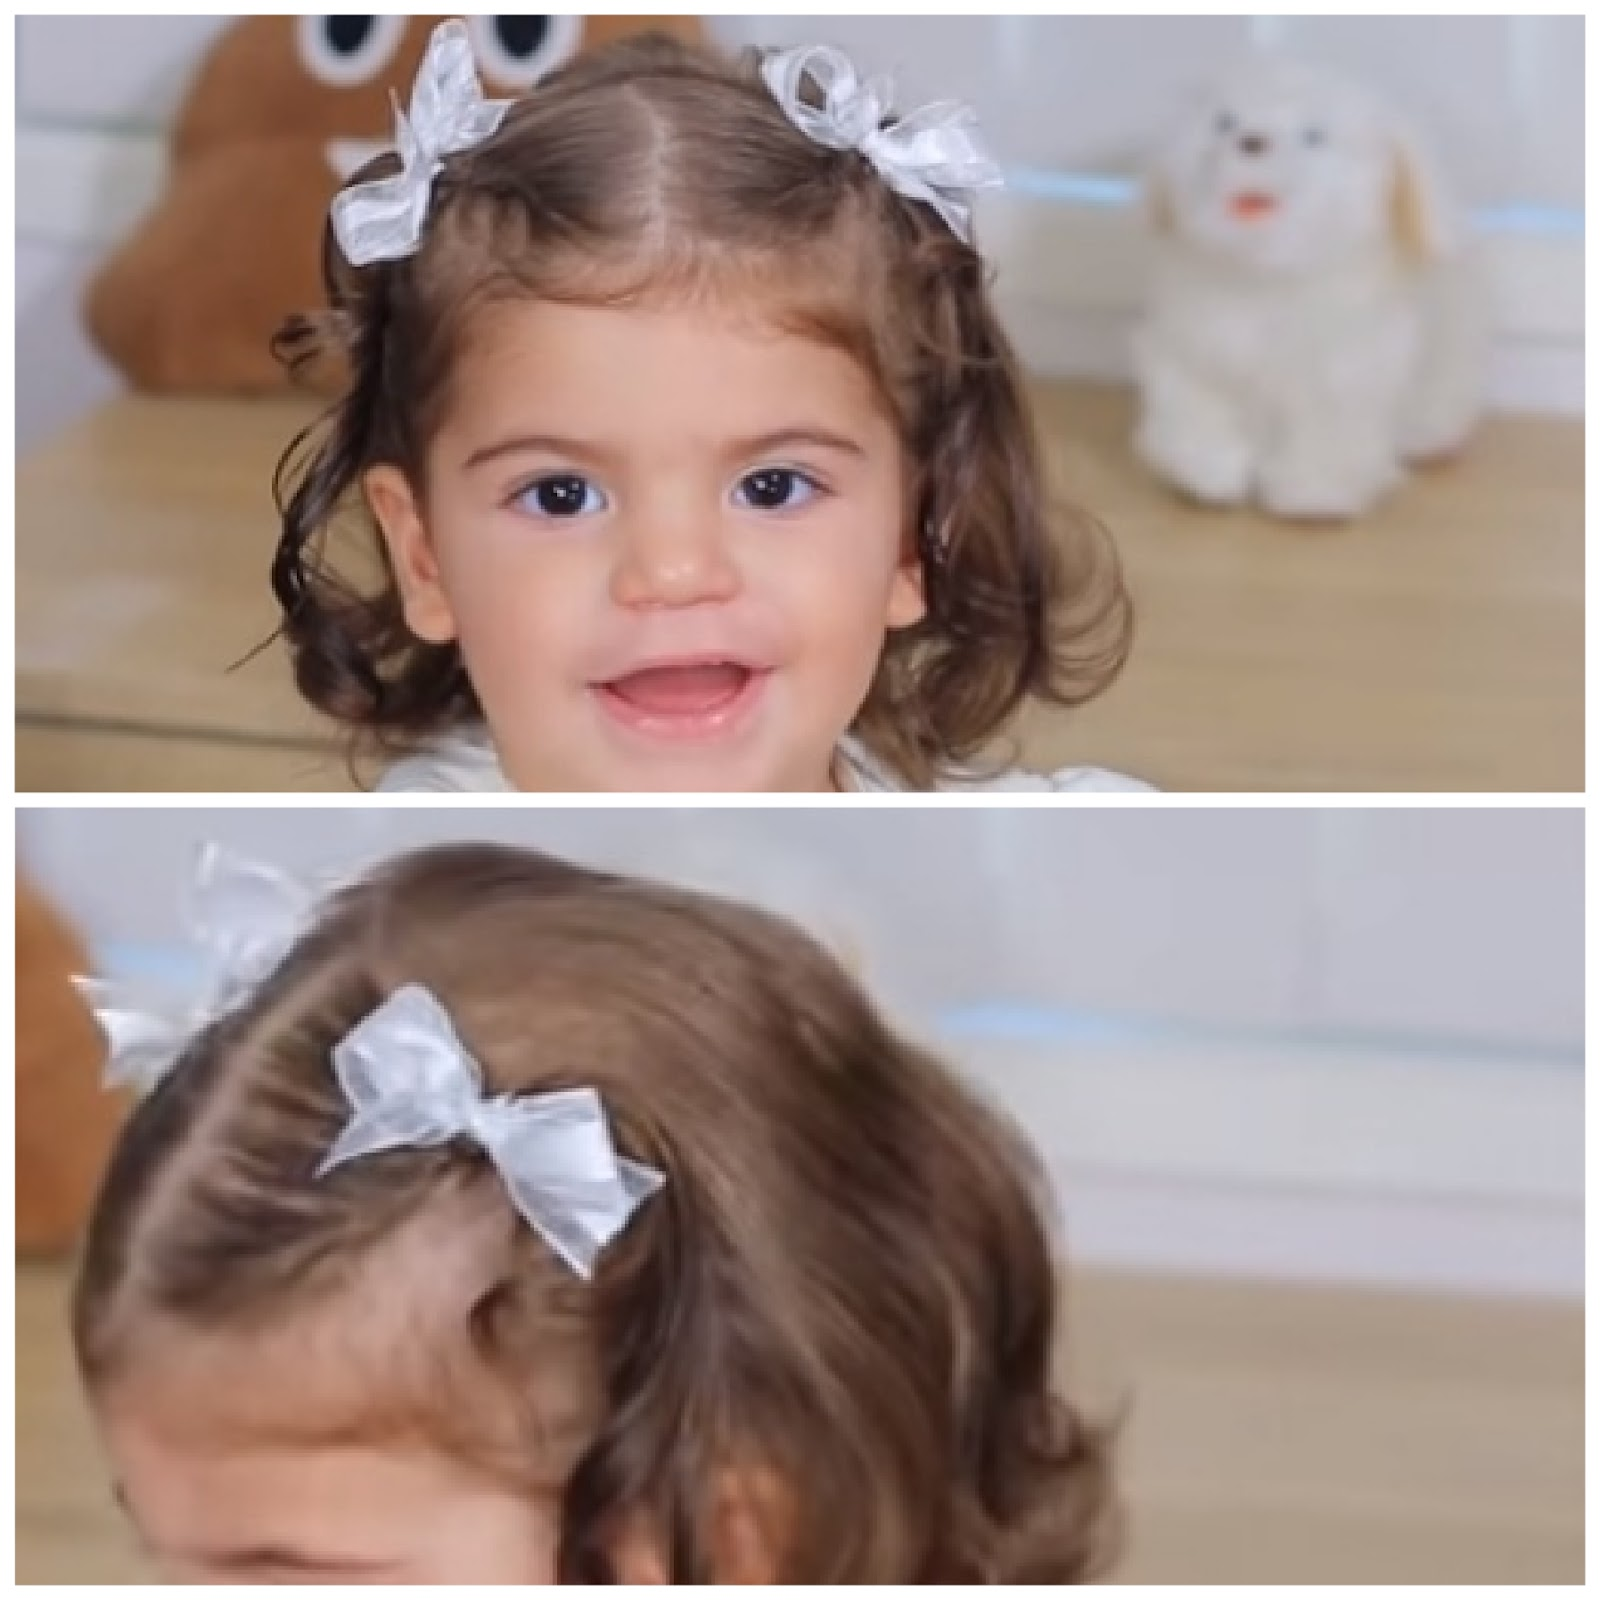 hairstyle for short hair for baby girl